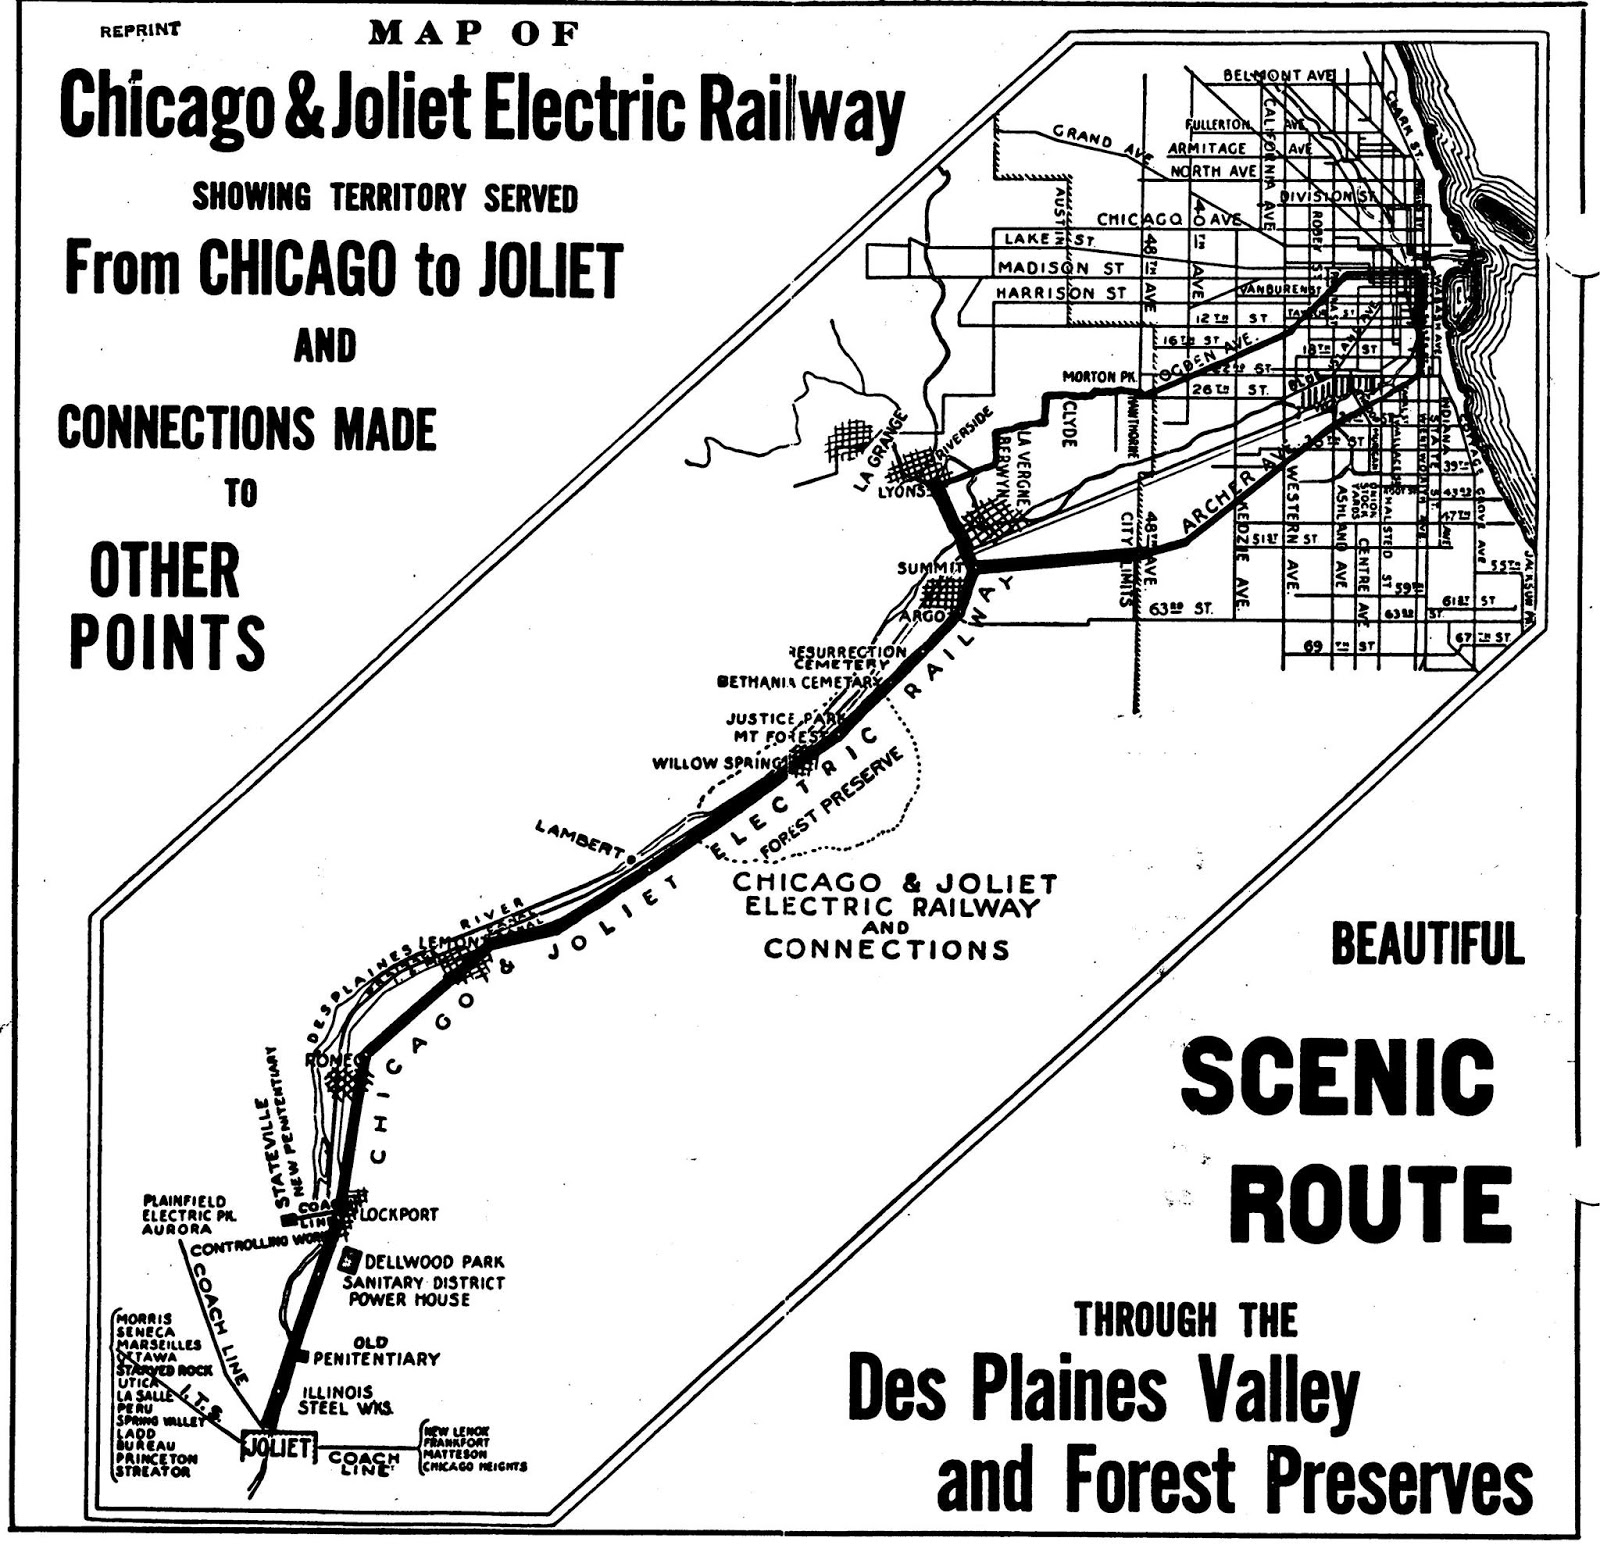 Industrial History: C&JE: Chicago & Joliet Electric Railway